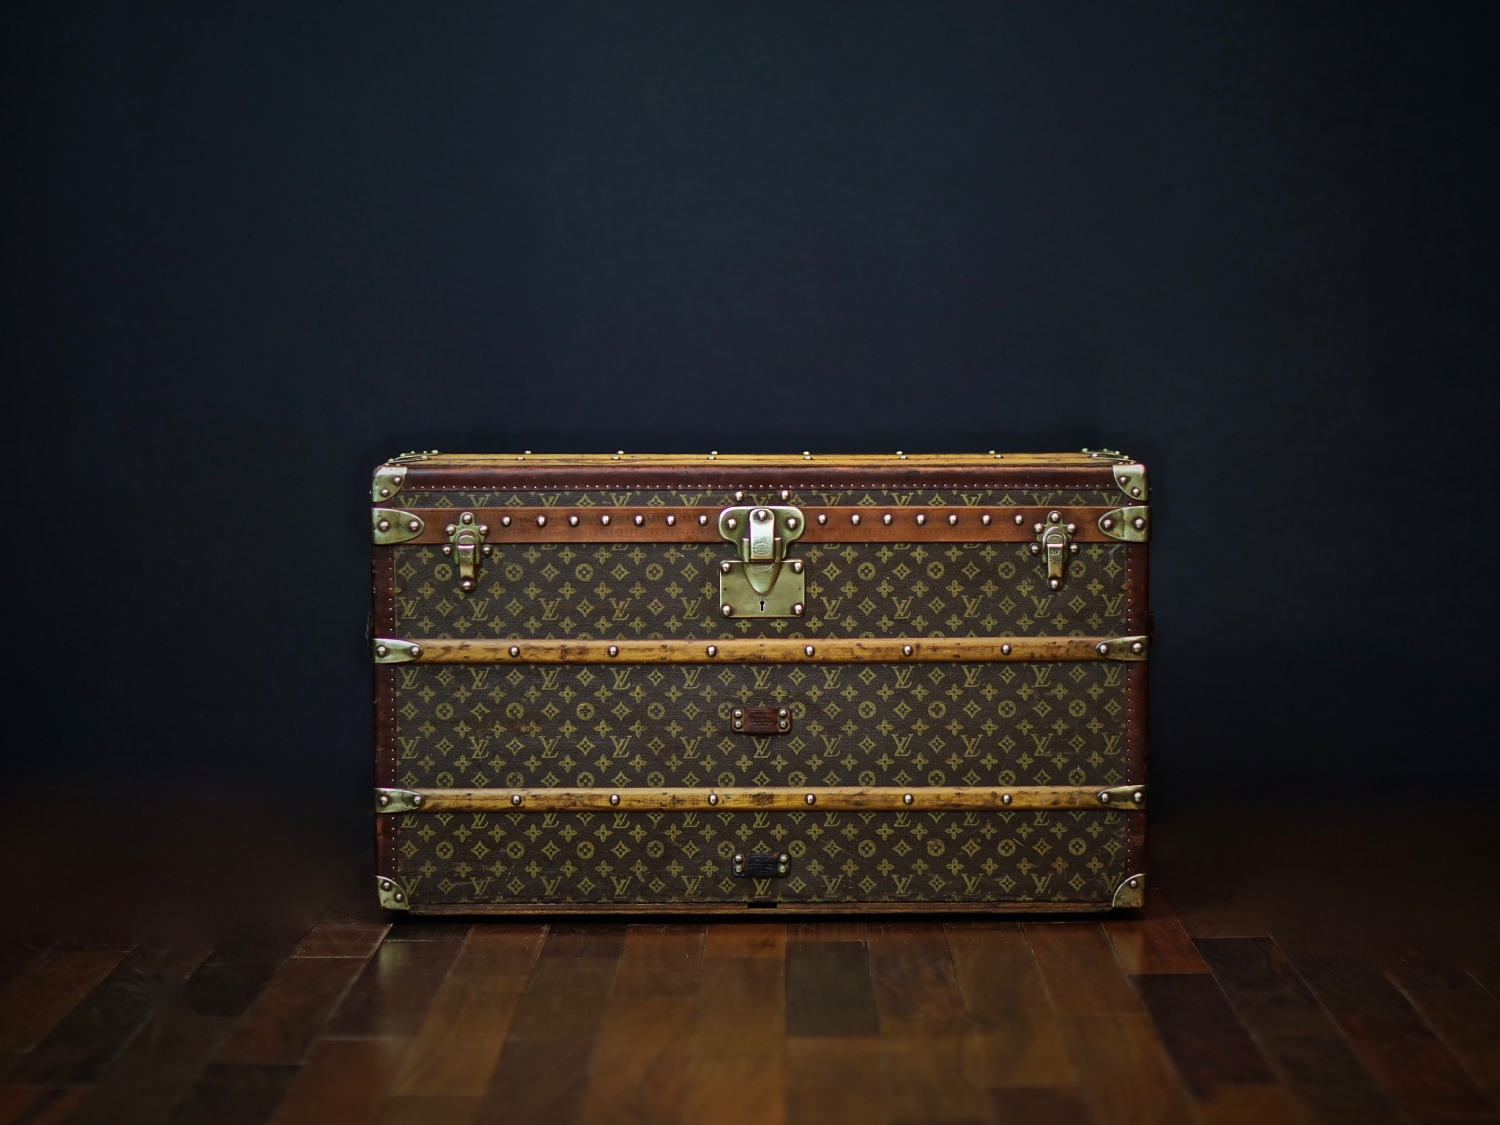 the-well-traveled-trunk-louis-vuitton-thumbnail-product-5655-1